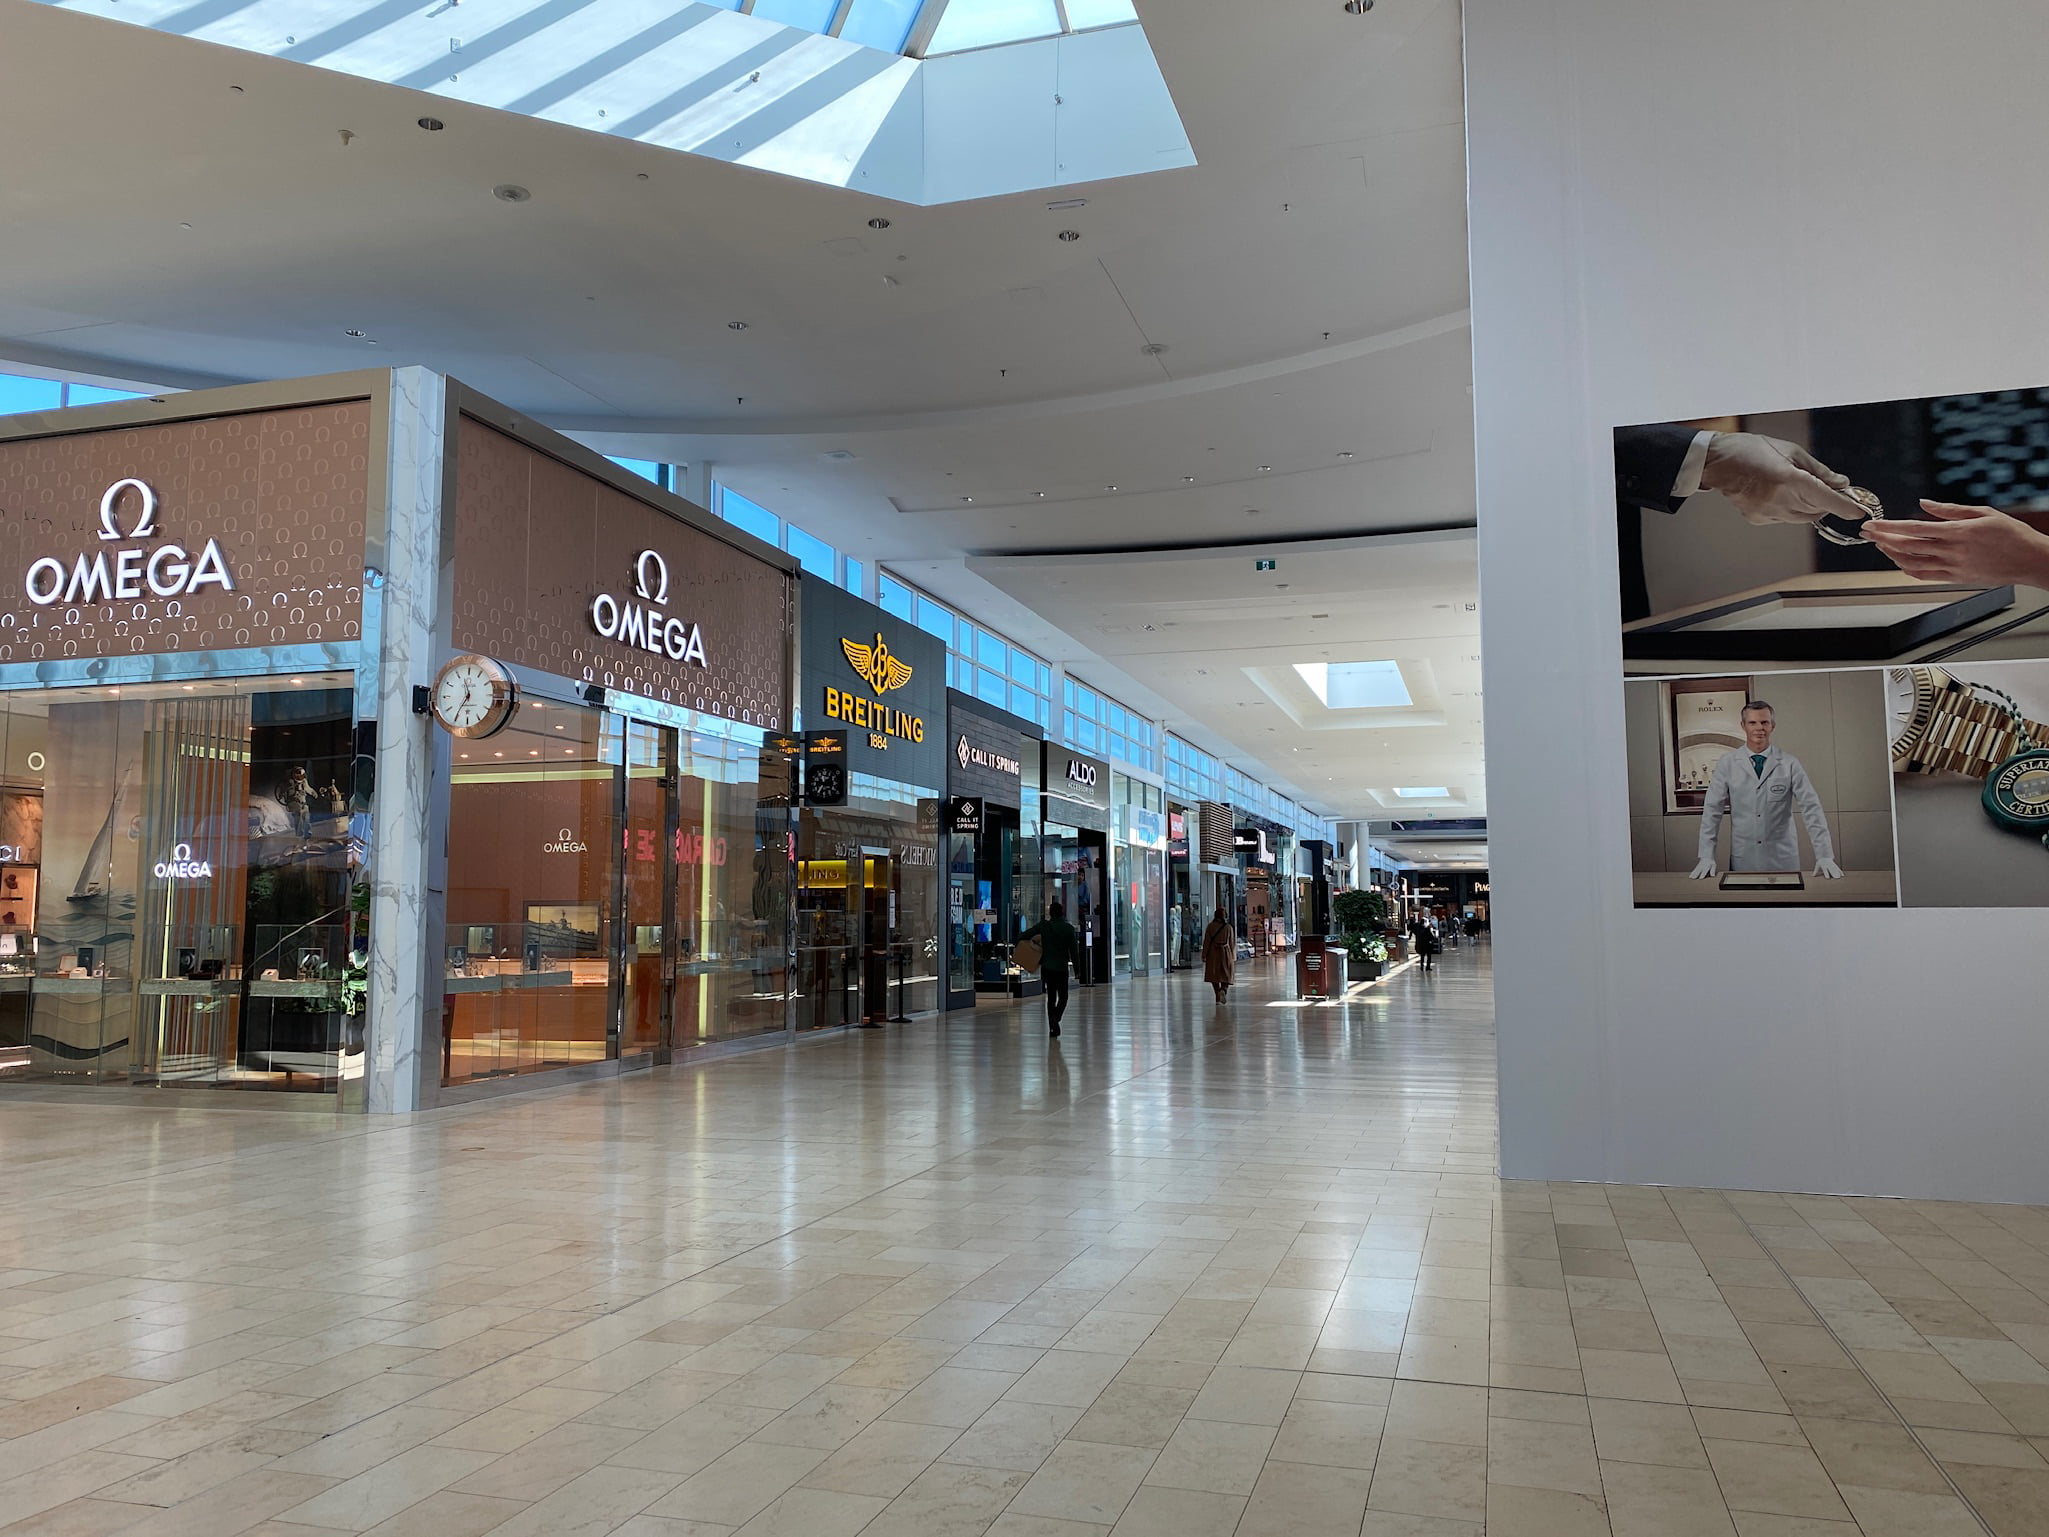 Omega at Yorkdale